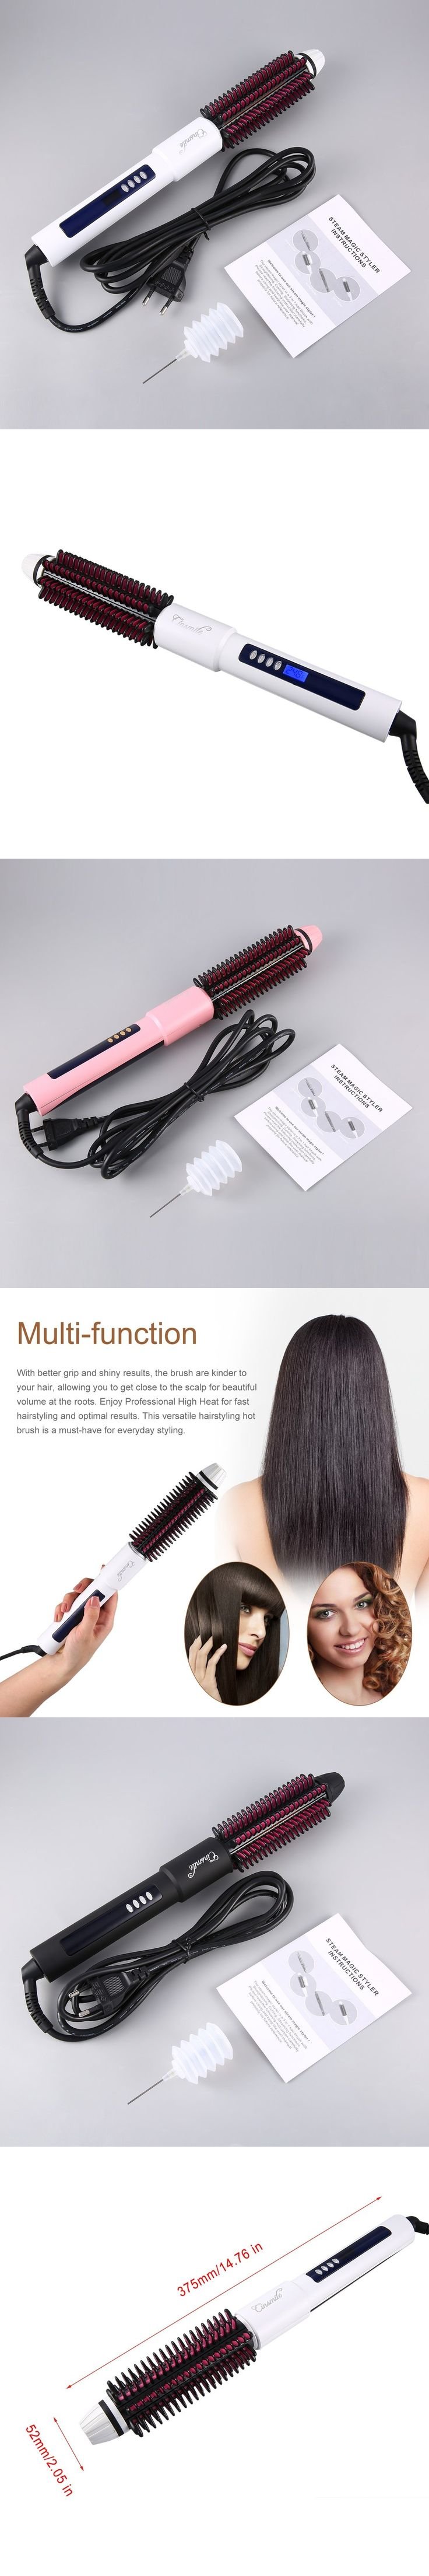 Multifunctional Infrared 3 in 1 Steam Magic Styler Electric Hair Brush with Straightener Curling irons Steaming Functions